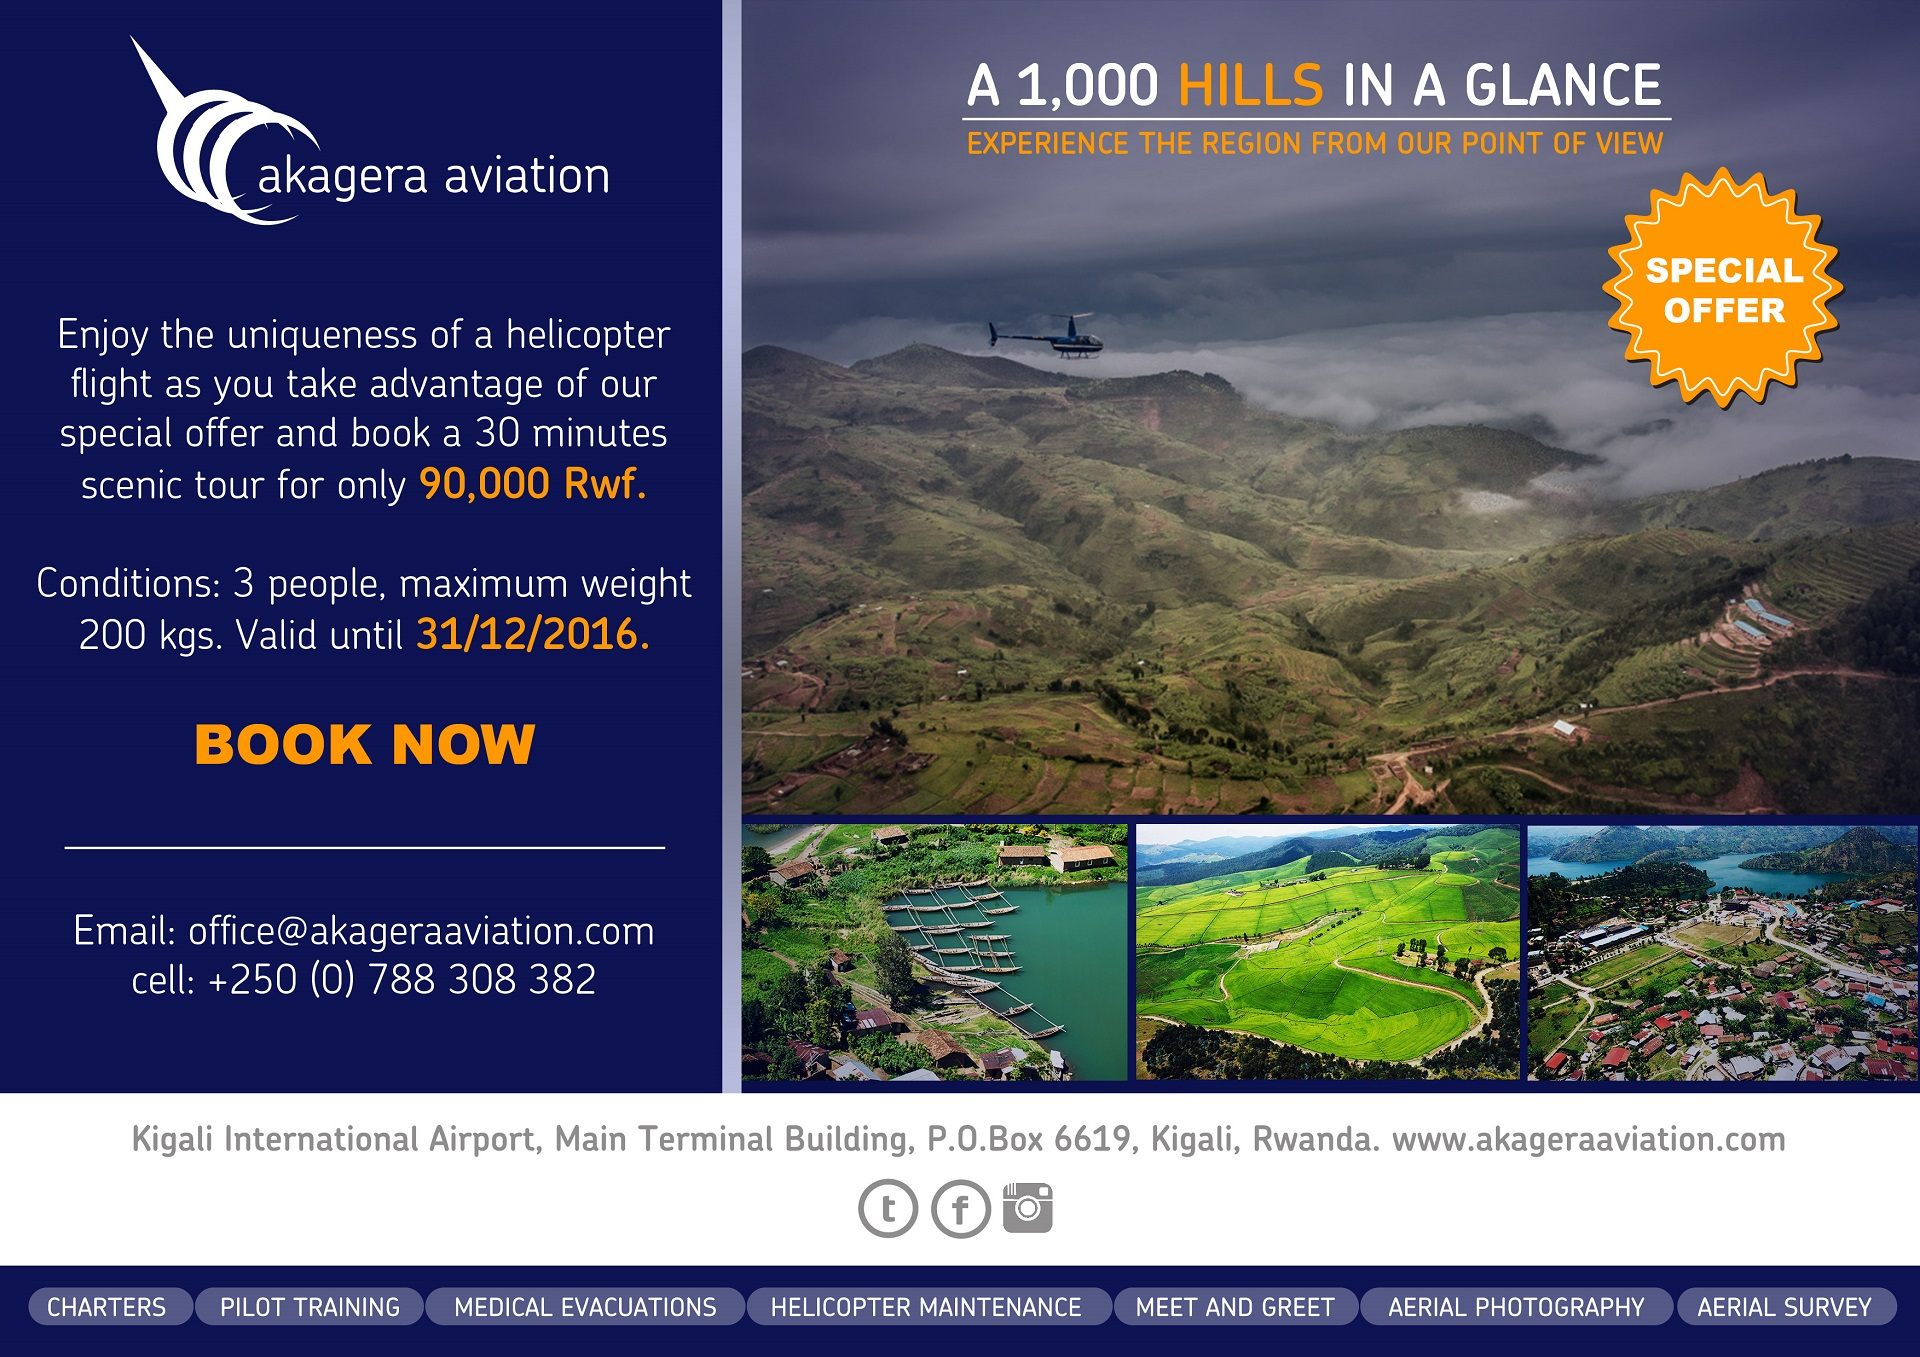 1k hills in a glance poster-01